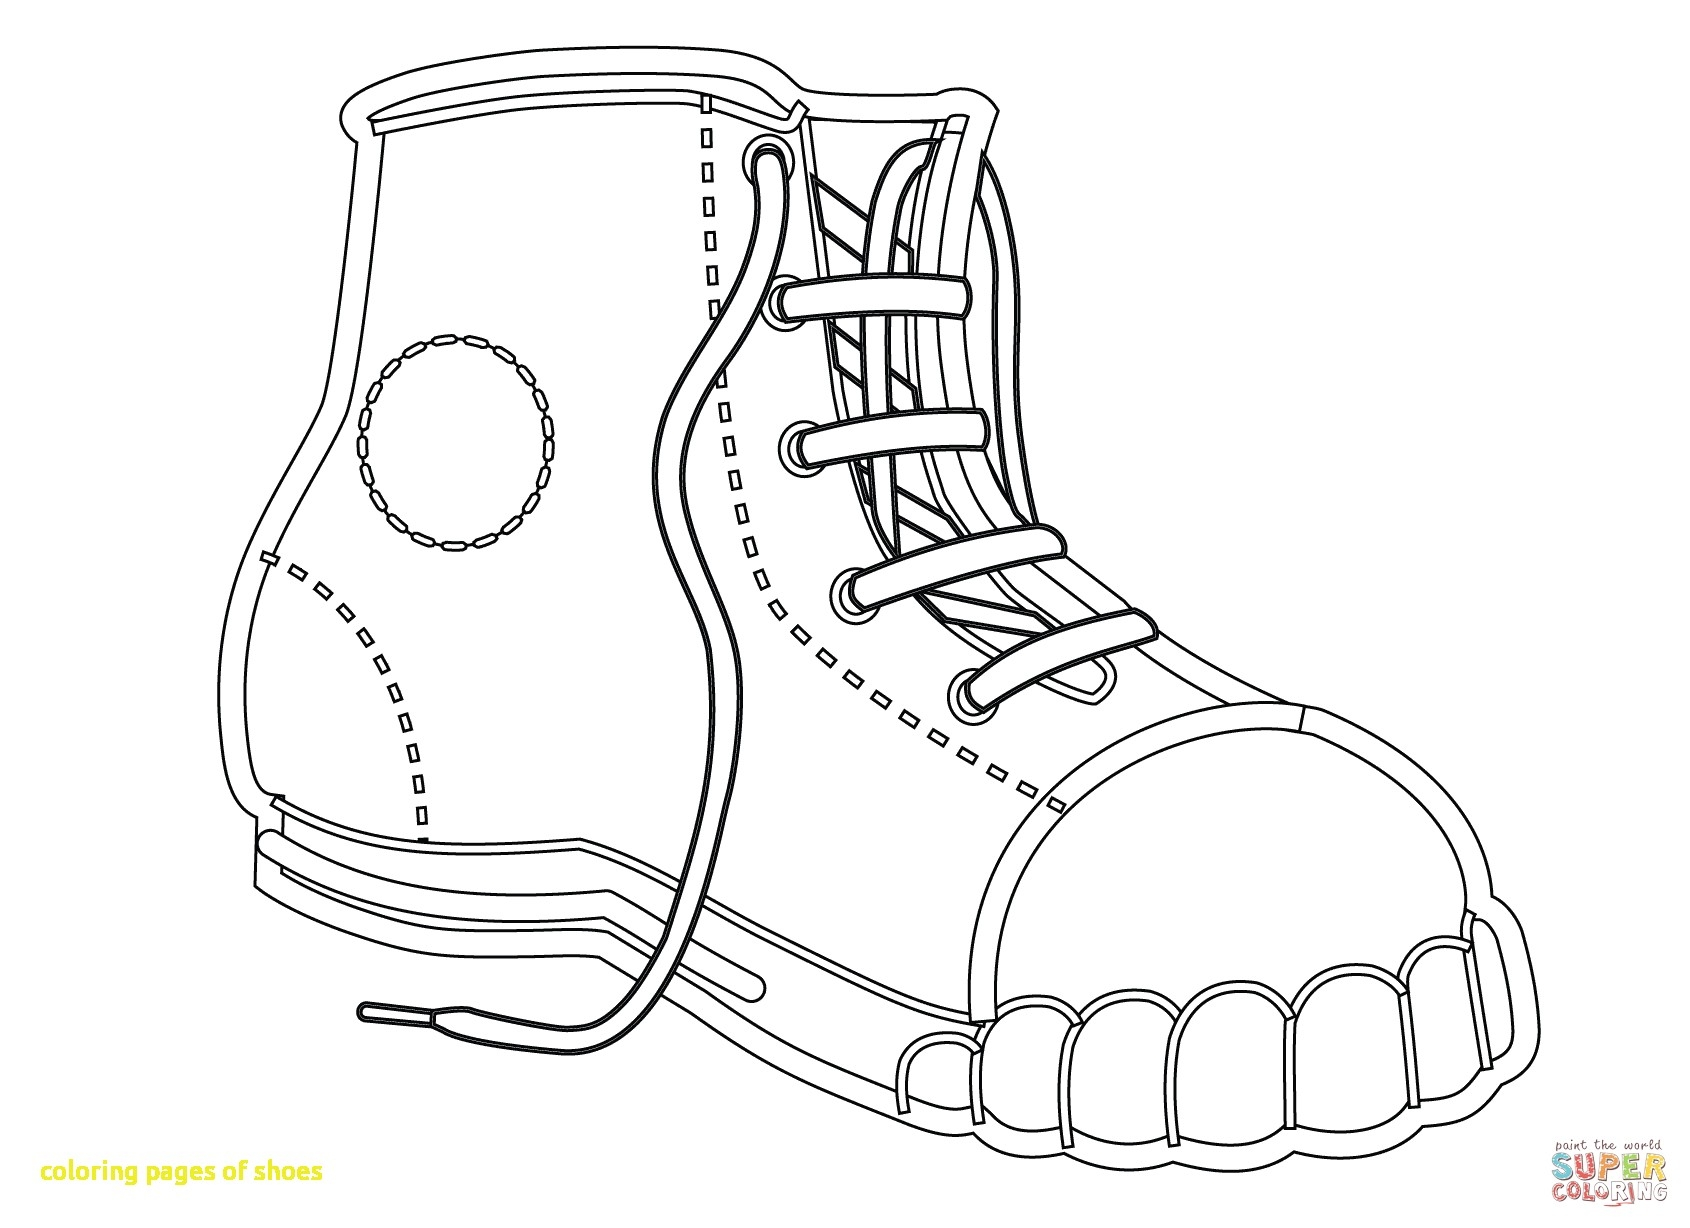 1690x1228 Focus Printable Tennis Shoe Coloring Pages Shoes With Open